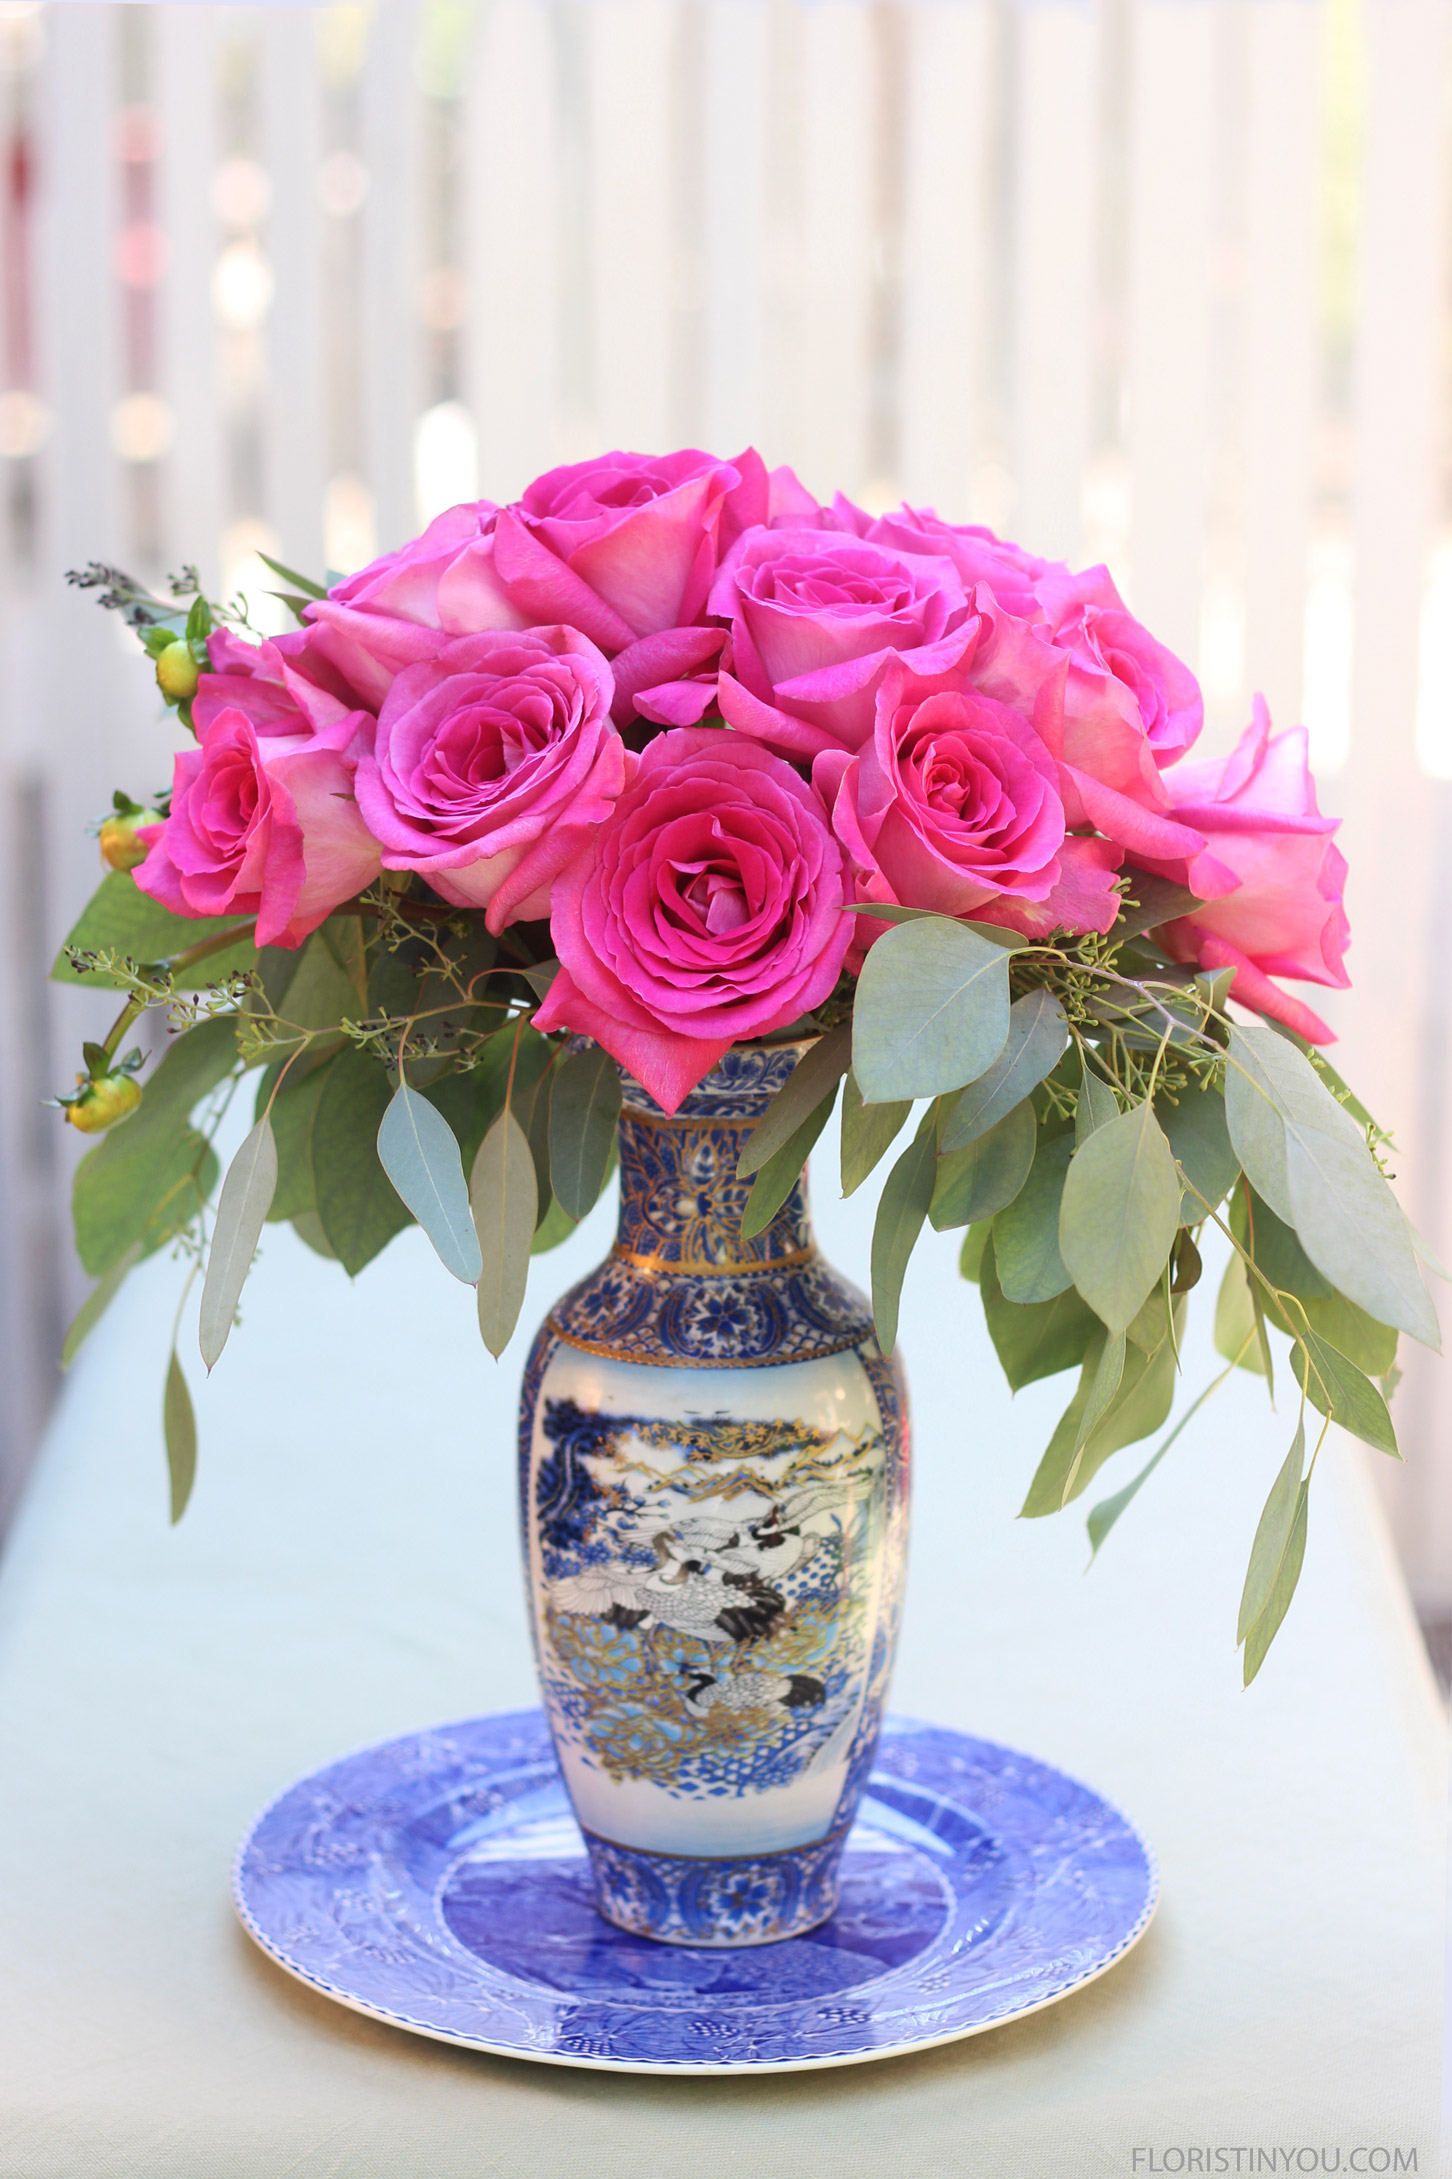 Roses in a Blue & White Tall Vase